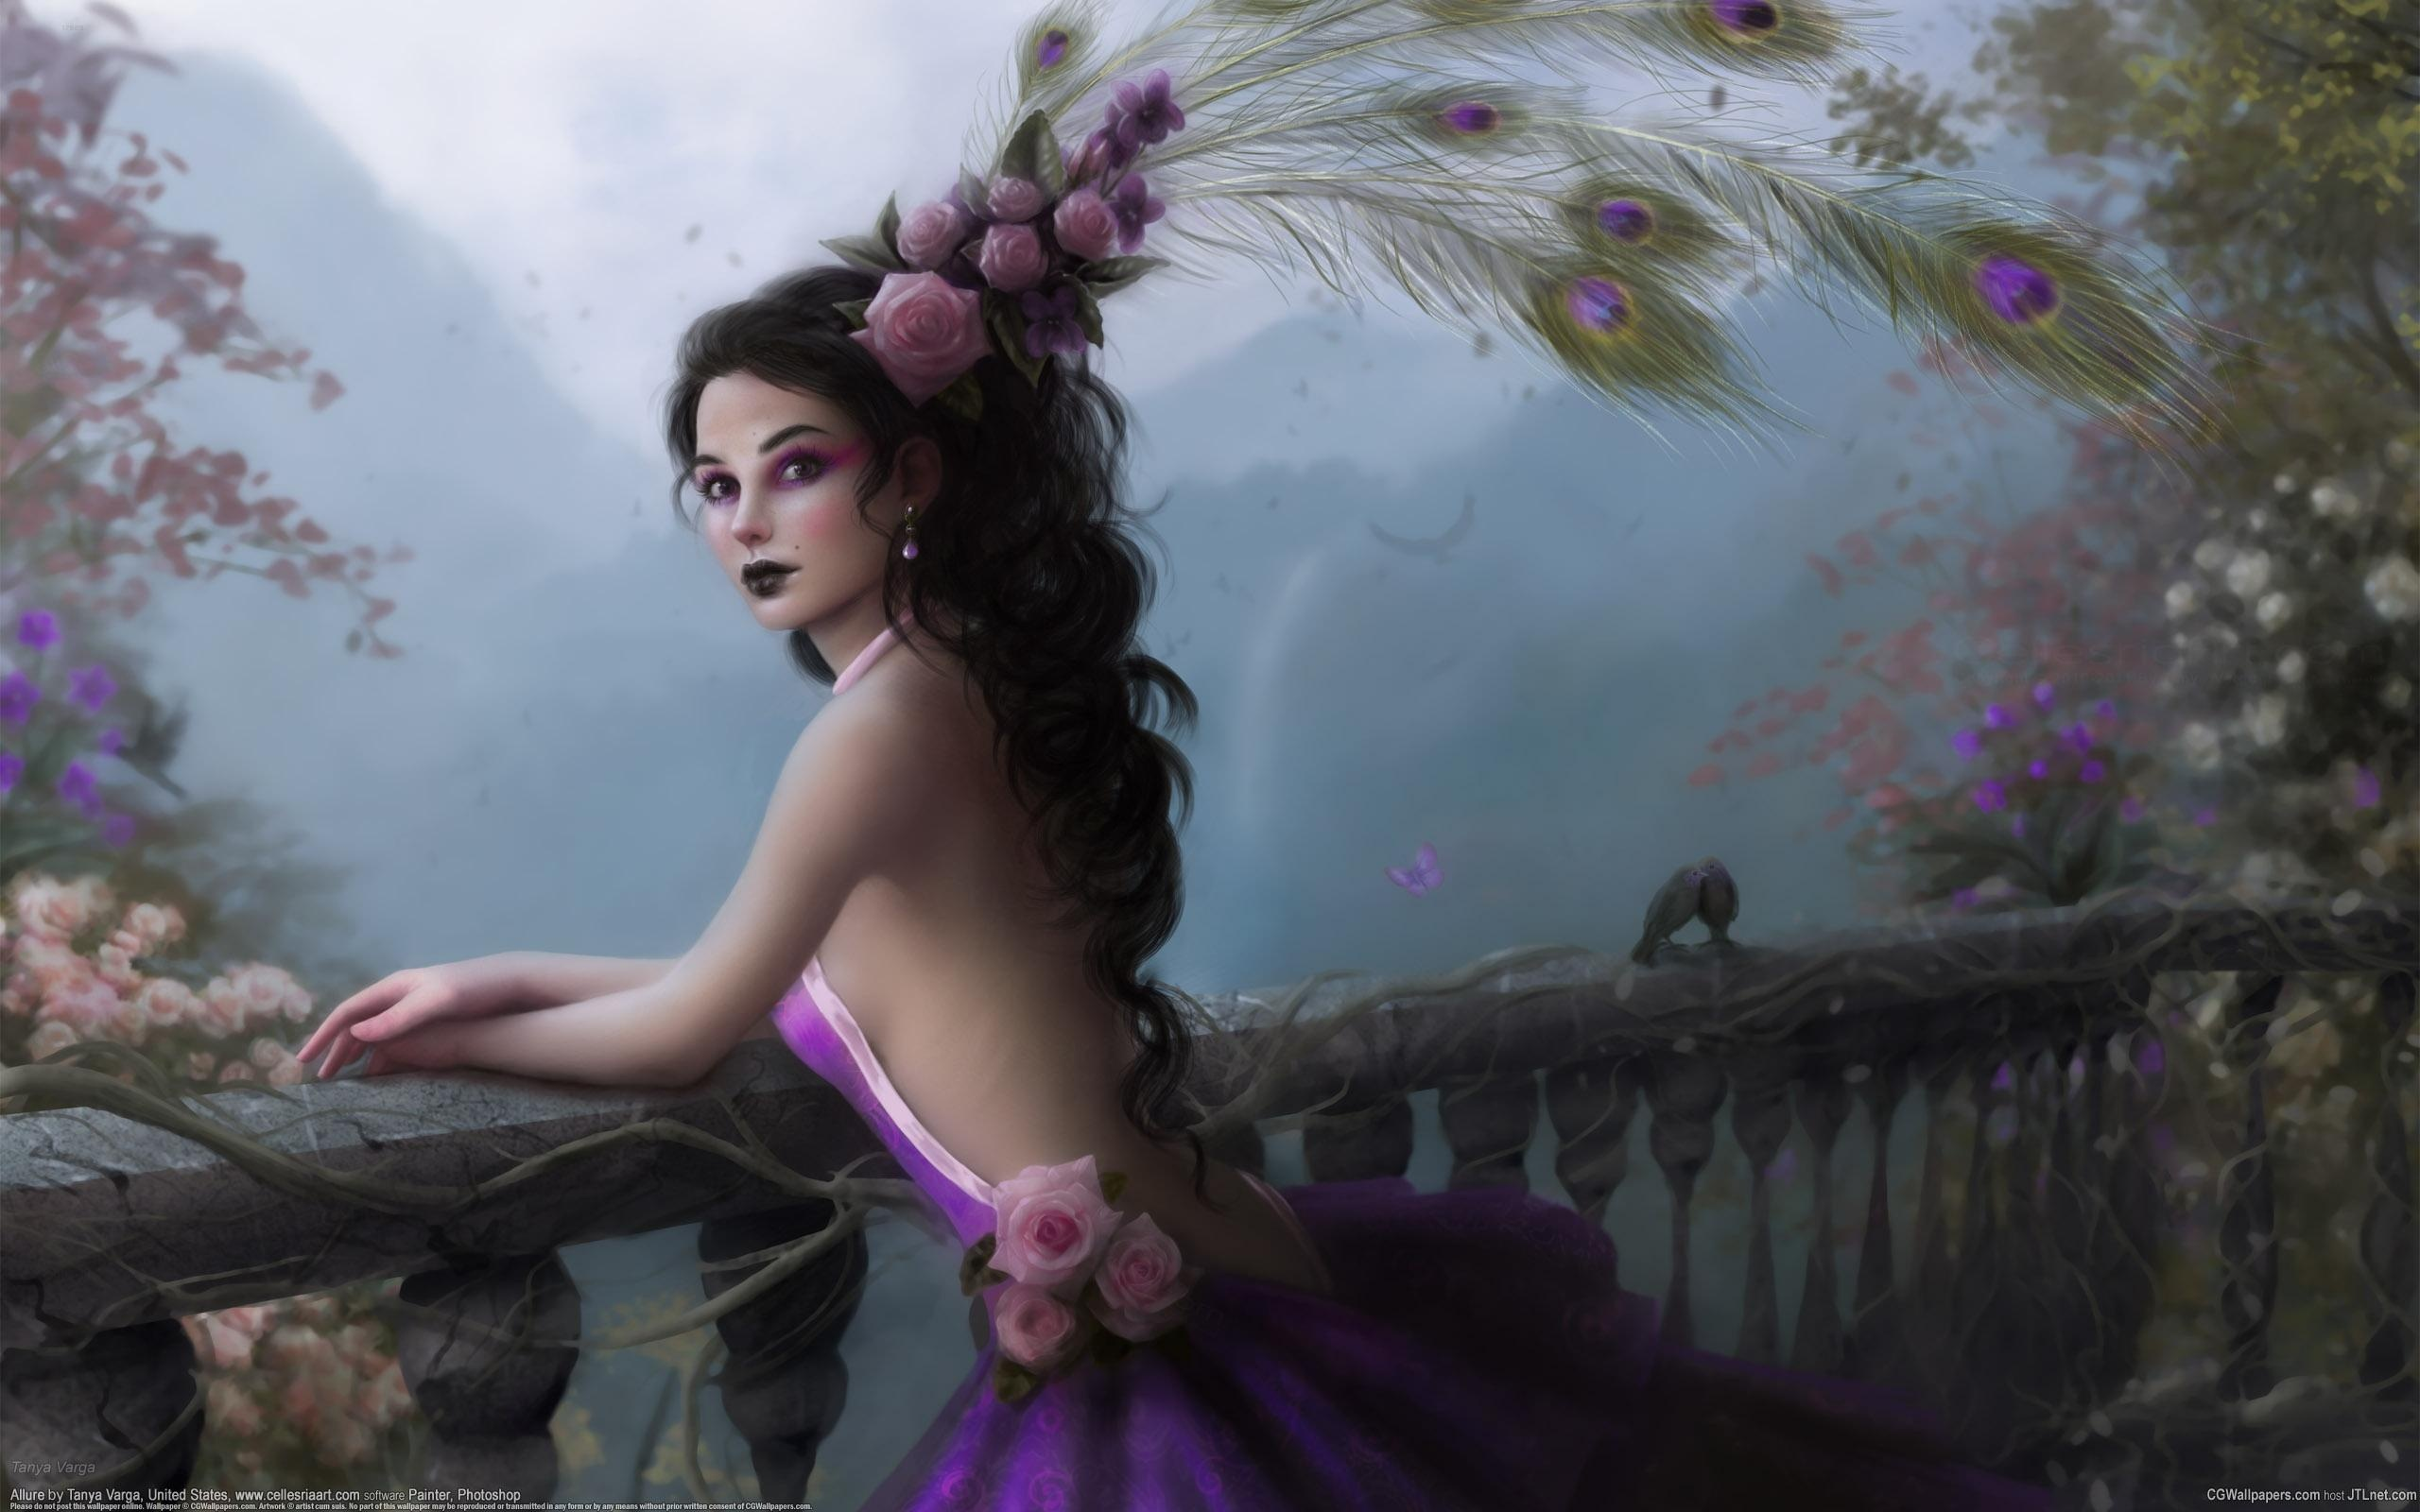 wallpaper fantasy girl peacock feathers 2560x1600 hd picture, image